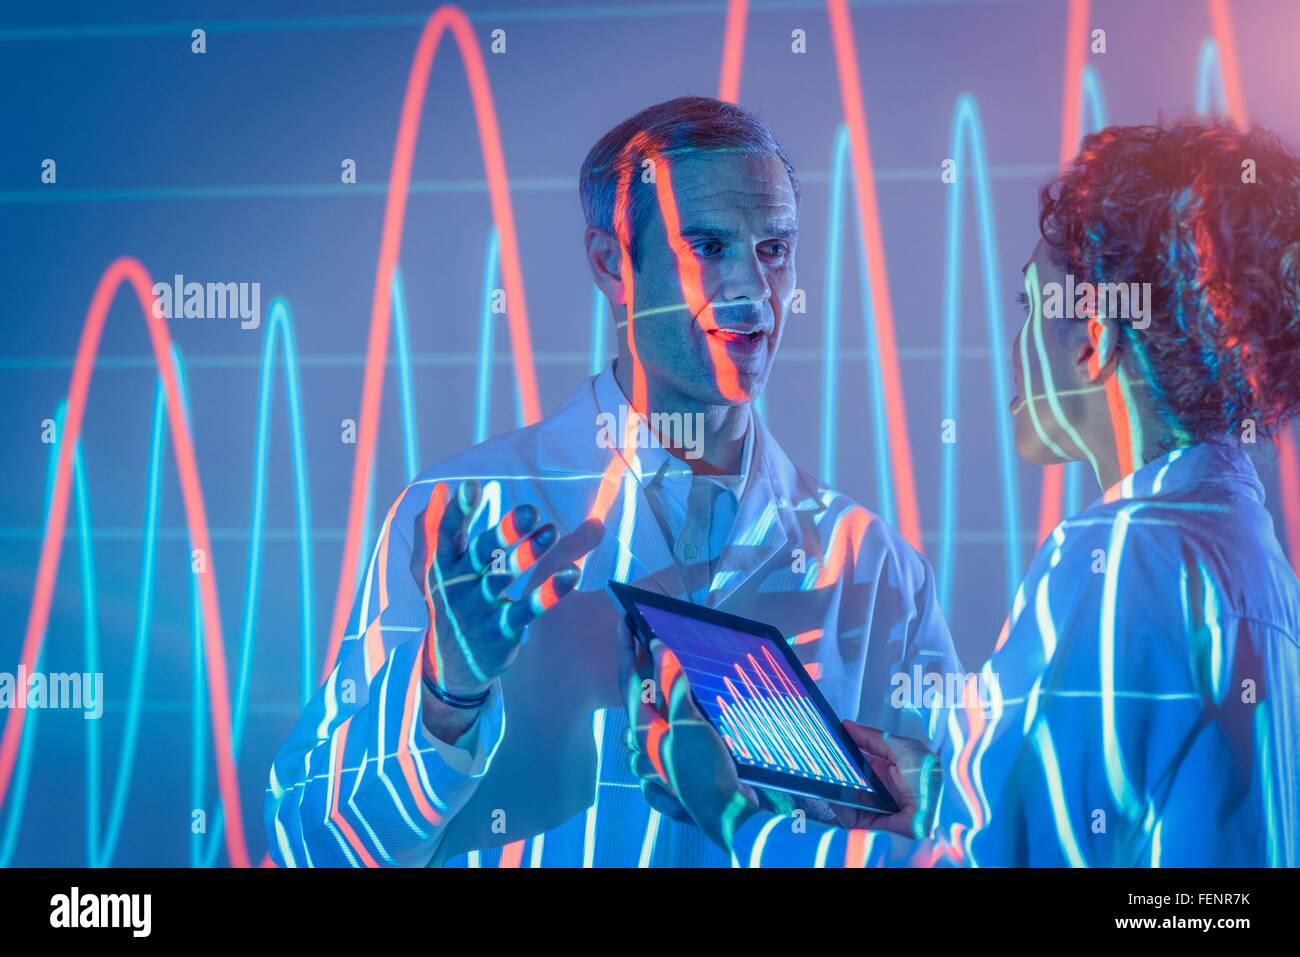 Scientists in discussion with graphical data projection - Stock Image